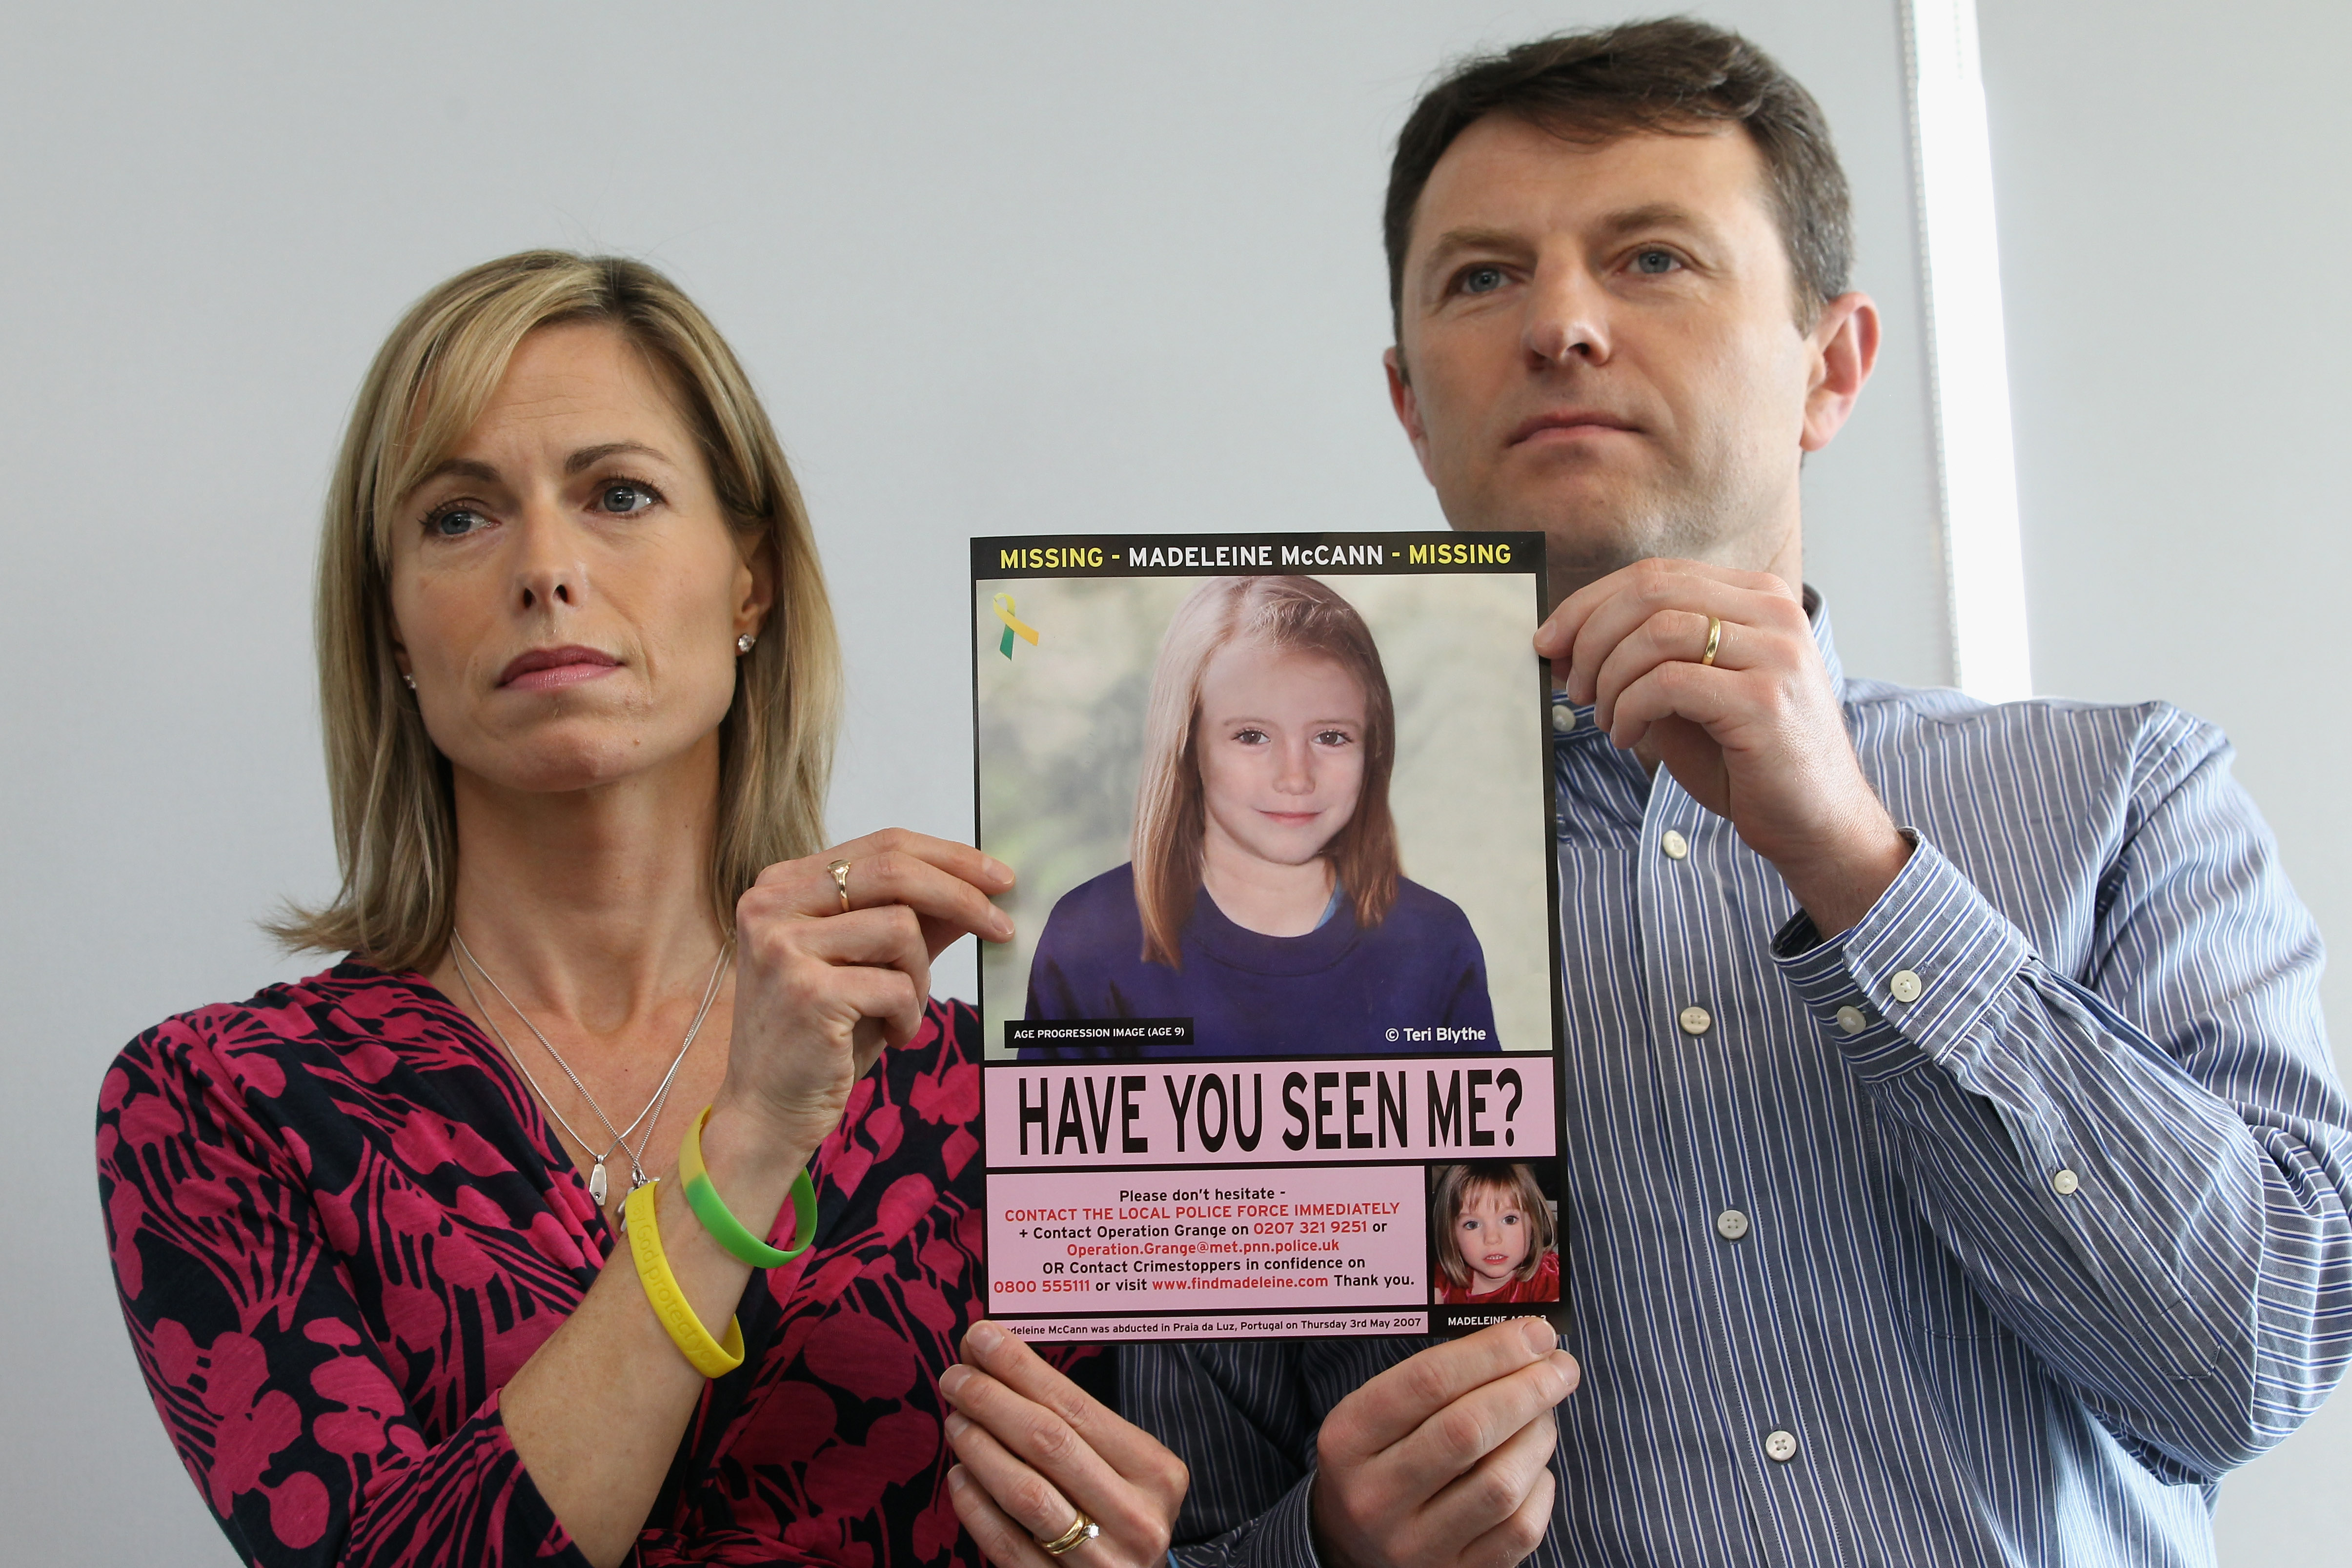 Kate and Gerry McCann hold an age-progressed police image of their daughter during a news conference to mark the 5th anniversary of the disappearance of Madeleine McCann, on May 2, 2012, in London, England. (Getty Images)